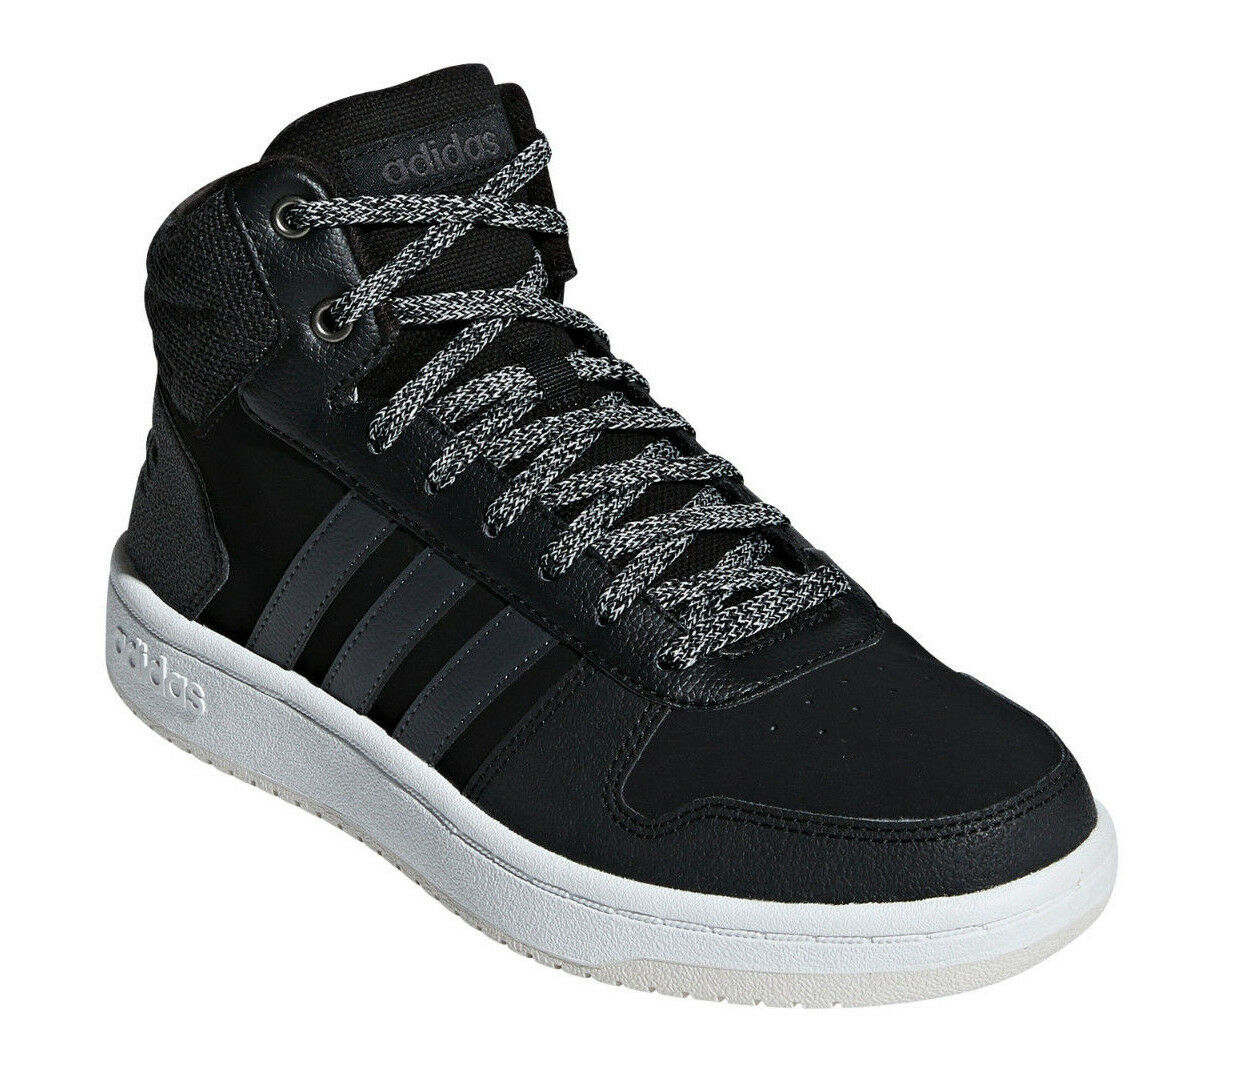 Adidas Damens Schuhes Casual Trainers Sneakers Fashion Hoops Mid Trainers Casual Running B42110 New 2562ad